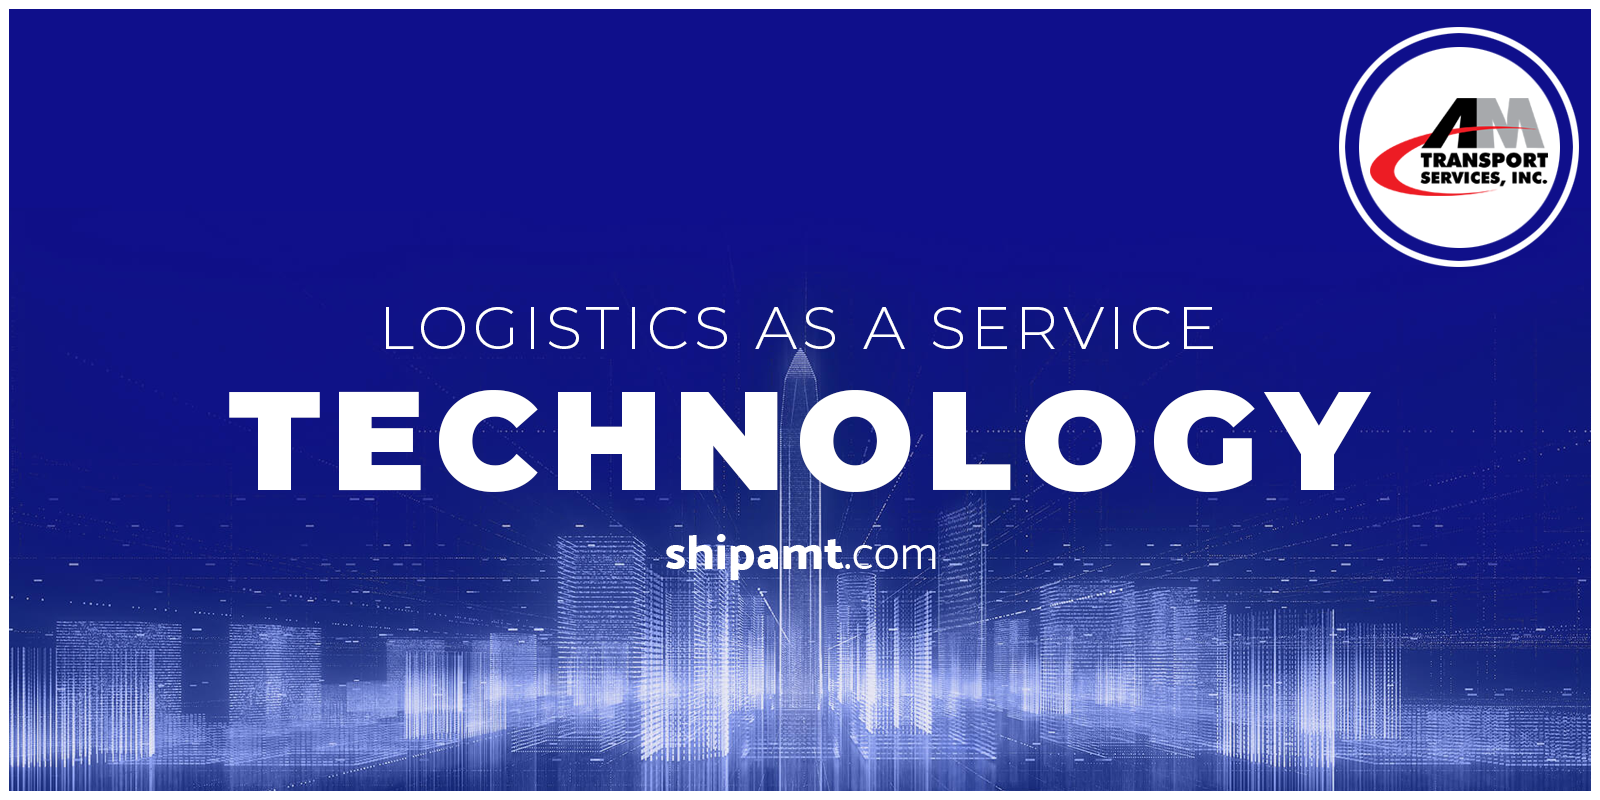 Logistics as a Service Technology on blue background.